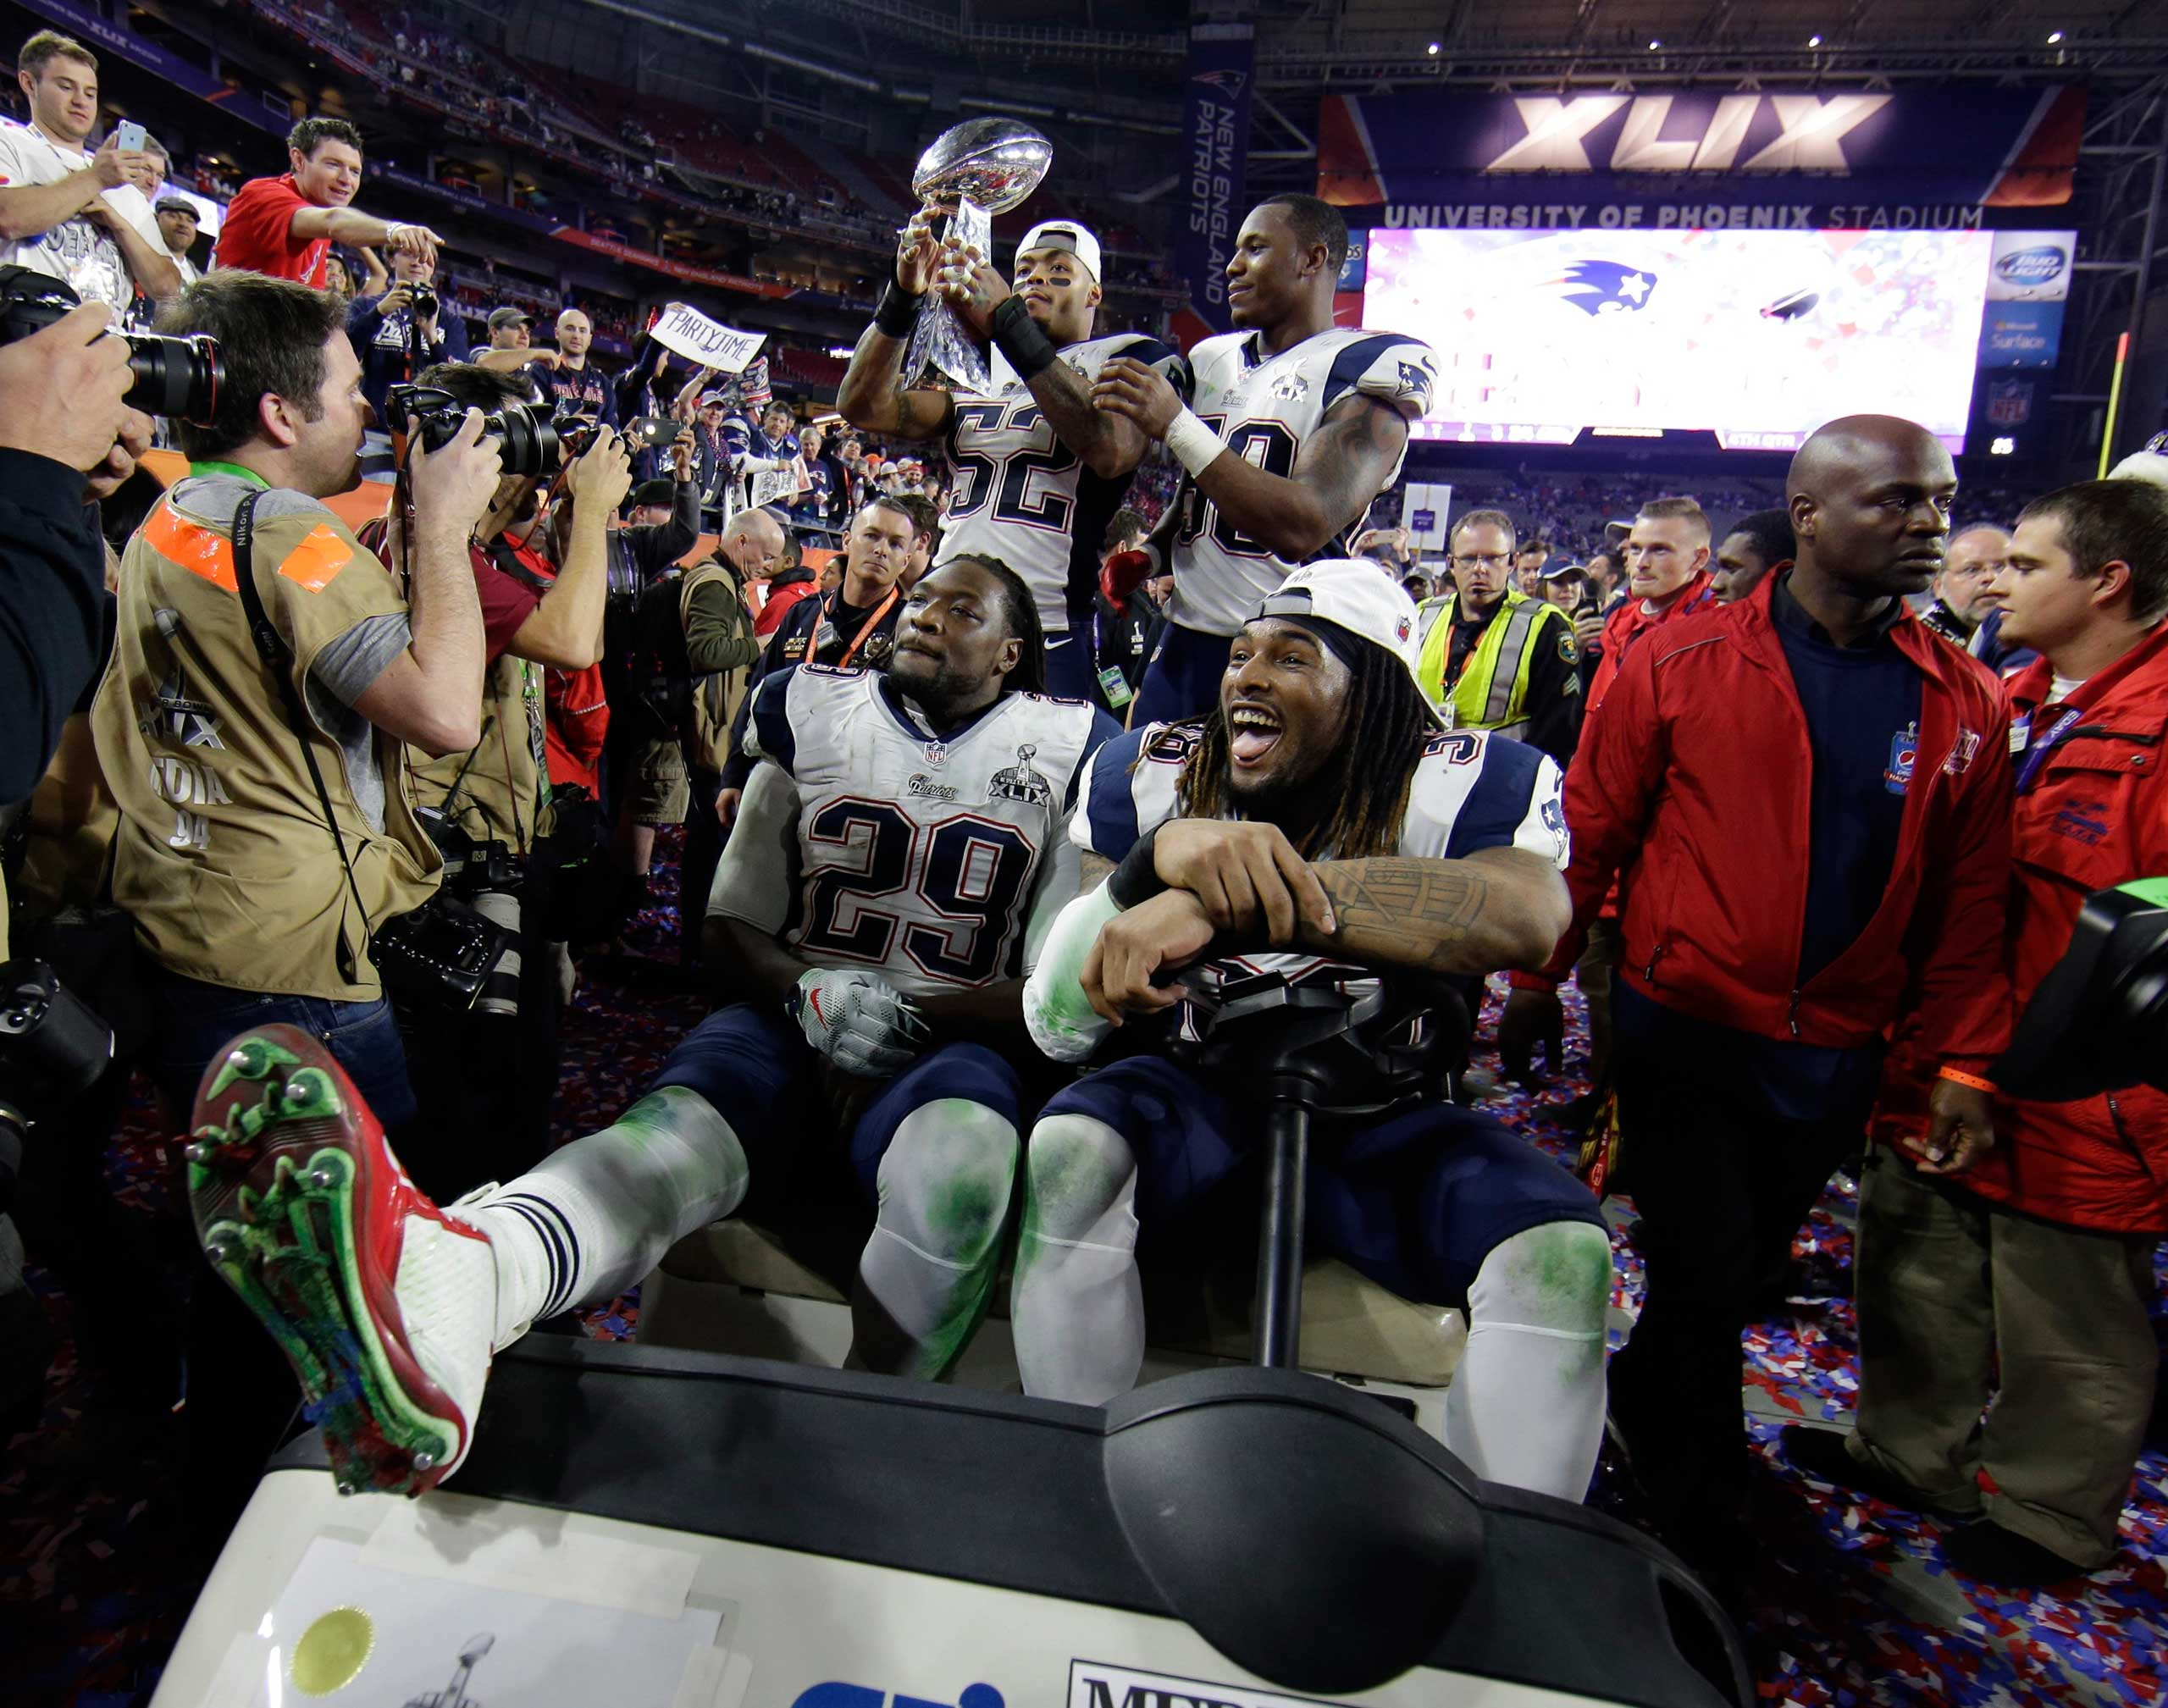 New England Patriots' Jonathan Casillas holds up the Vince Lombardi Trophy as he celebrates with his teammates after the NFL Super Bowl XLIX football game against the Seattle Seahawks on Feb. 1, 2015, in Glendale, Ariz.